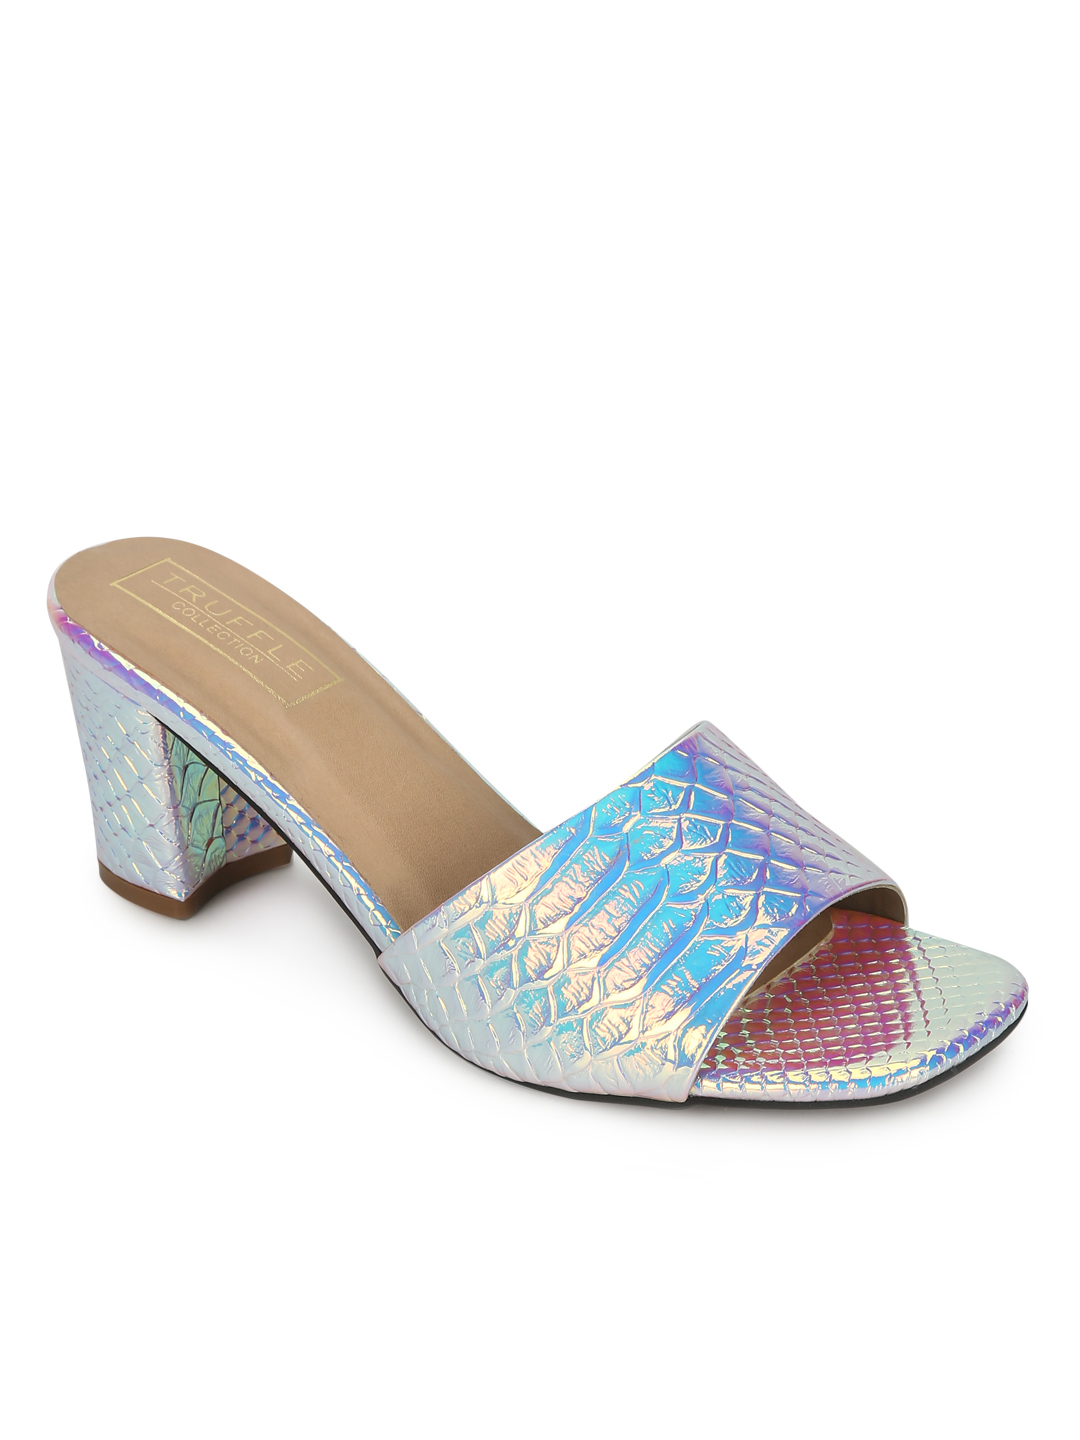 Truffle Collection   Silver PU Holographic Snake Pattern Sandals